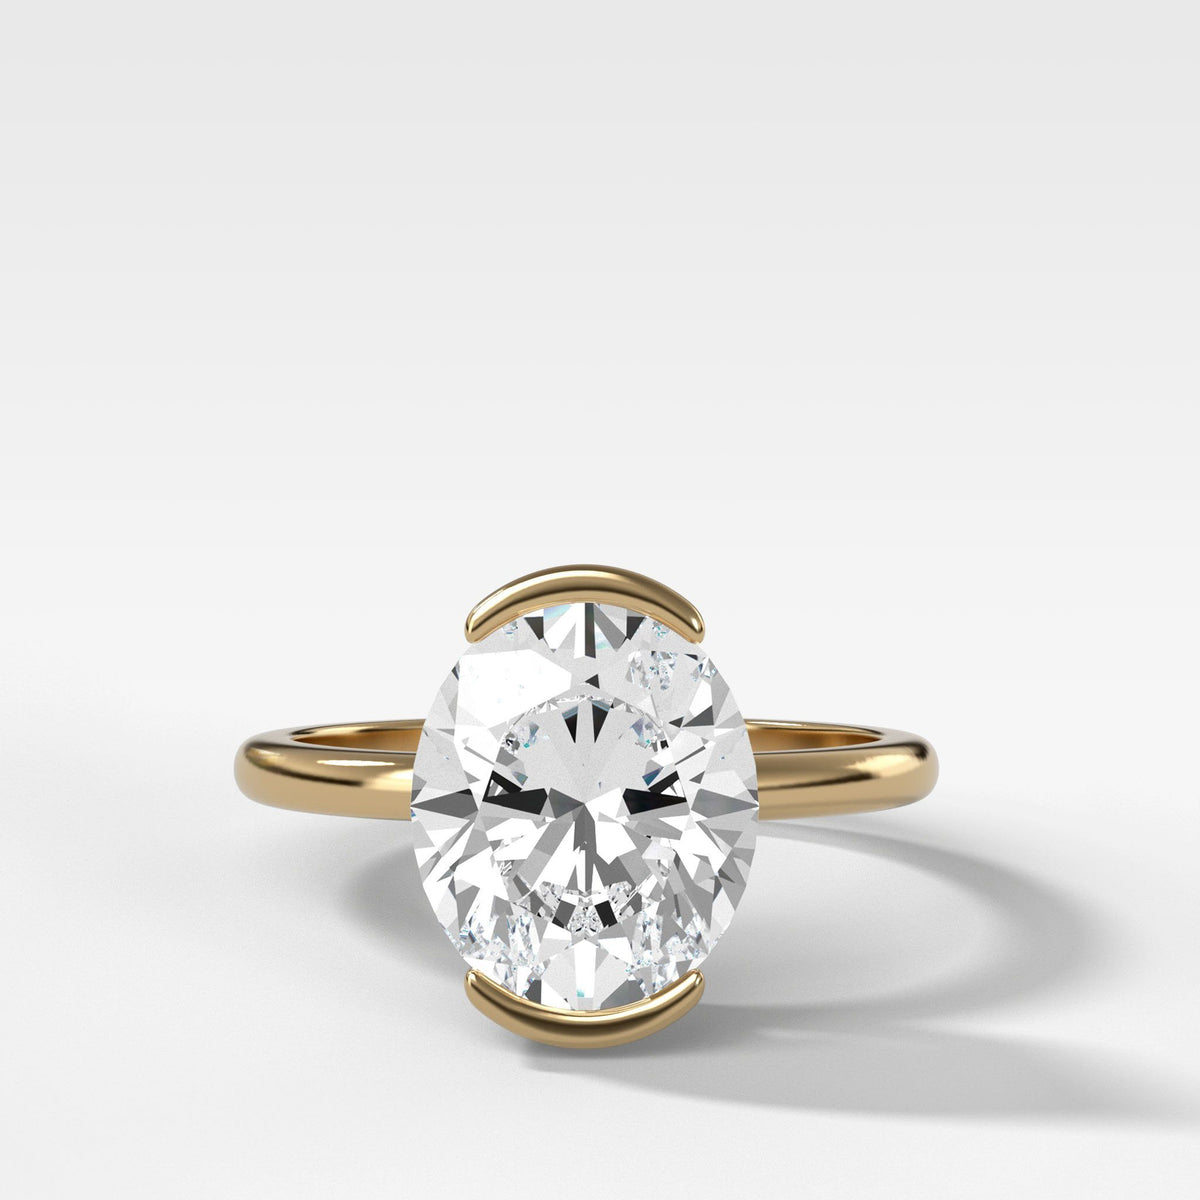 North South Half Bezel Solitaire Engagement Ring With Oval Cut In Yellow Gold By Good Stone